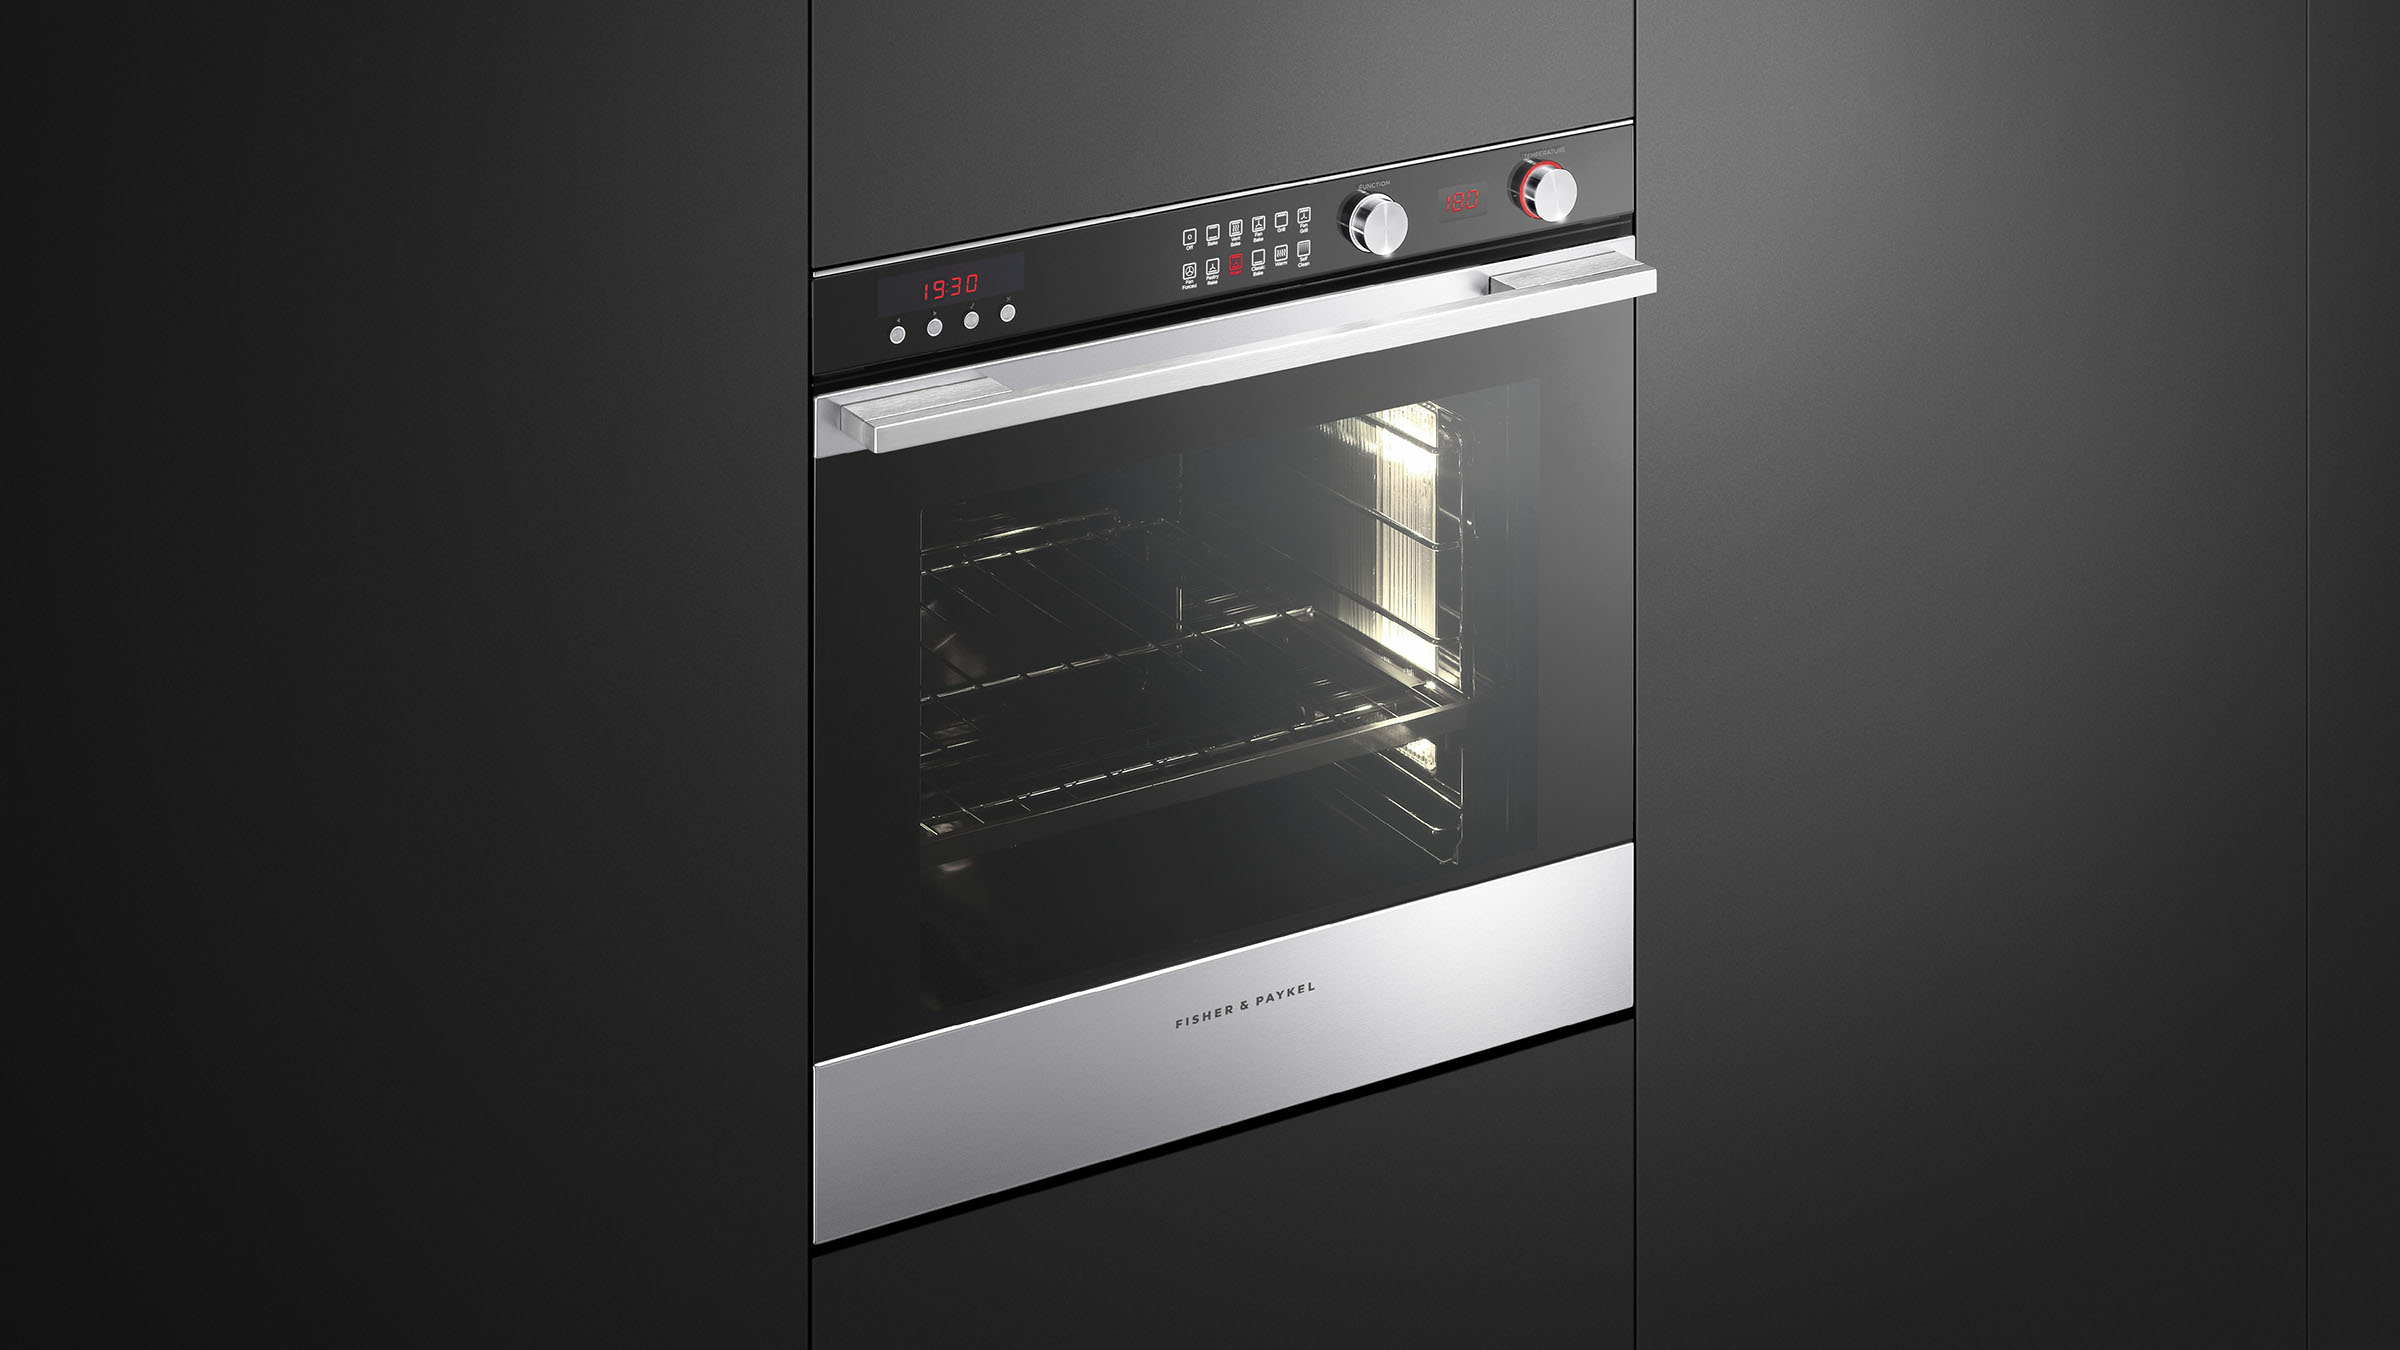 ovens convection electric wall ovens fisher paykel nz rh fisherpaykel com